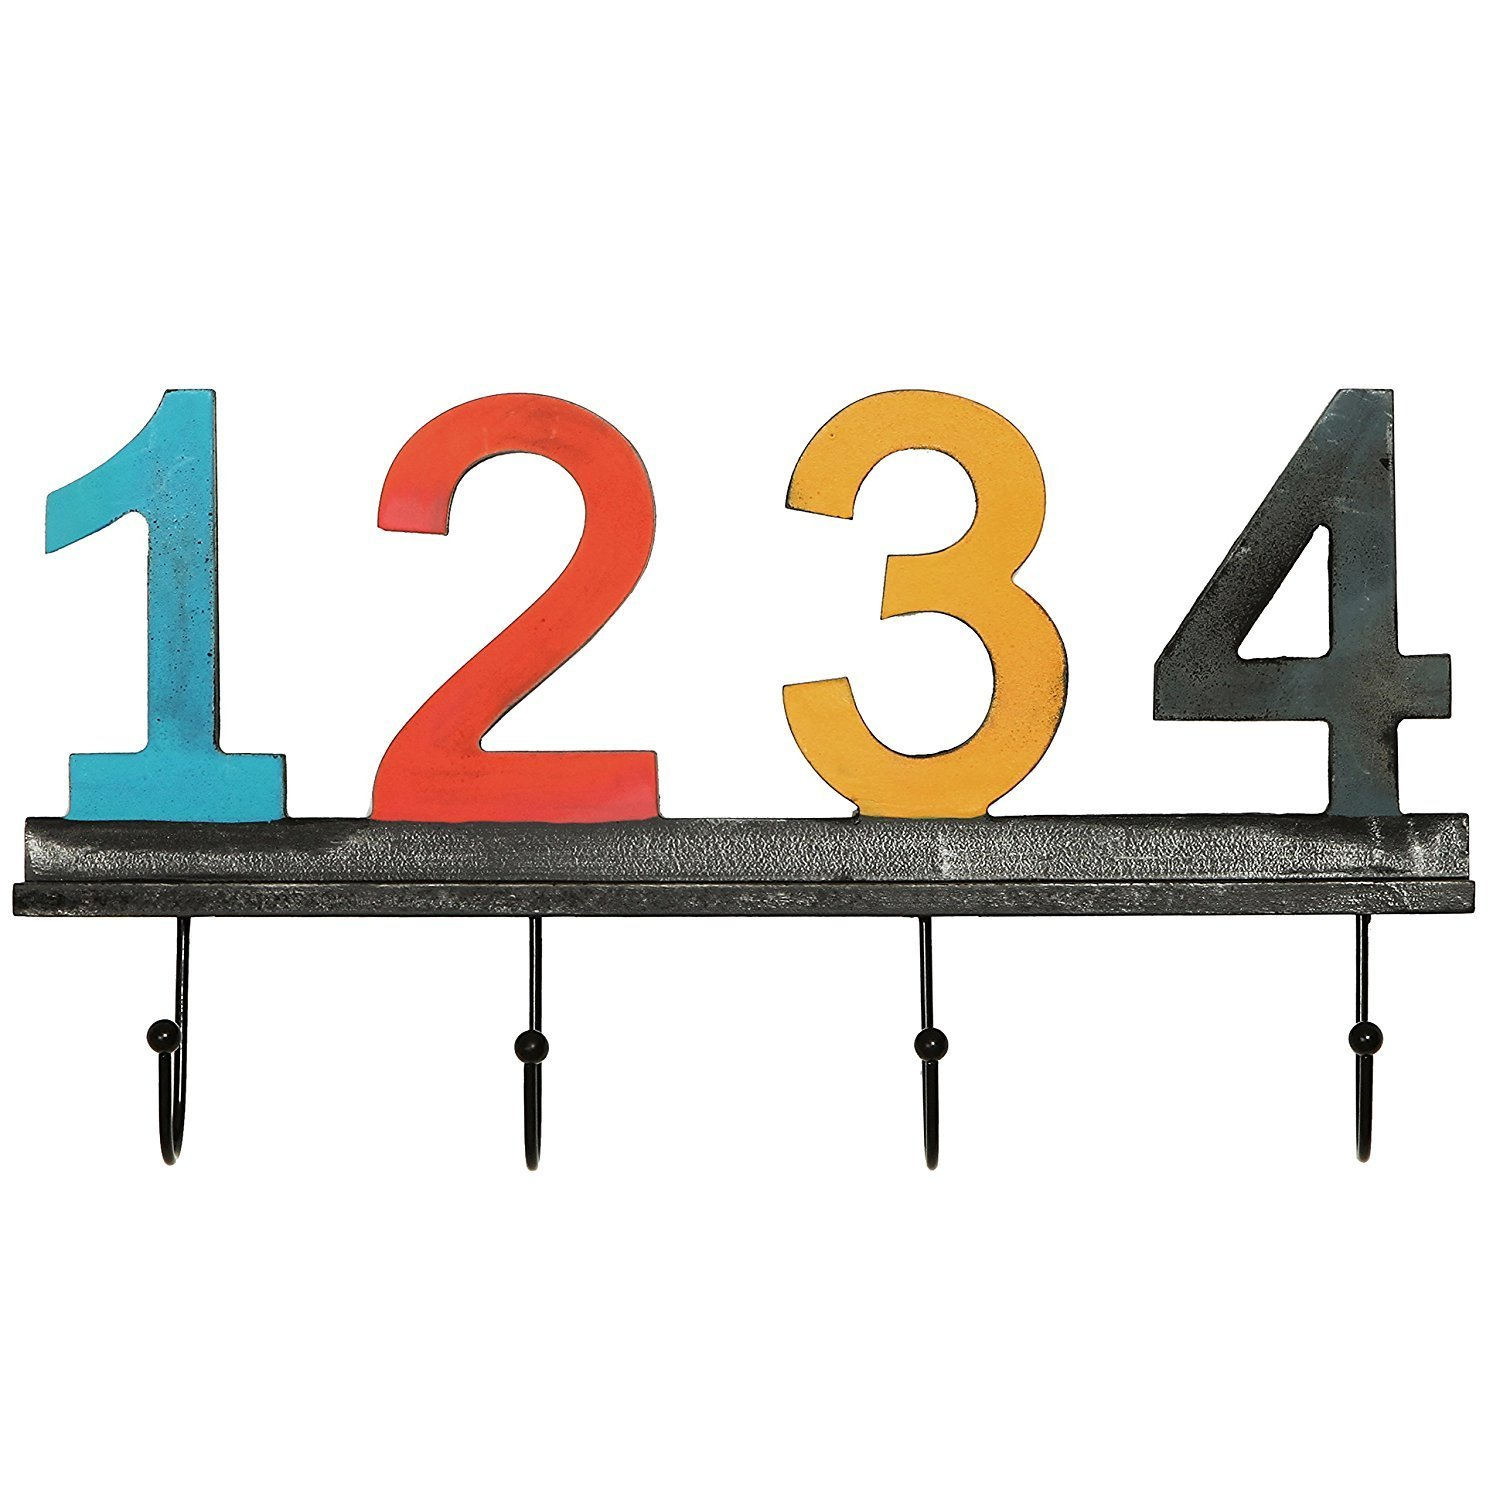 Chris.W Vintage-Style Multi-Colored Wooden Wall Mounted Numbered Coat & Hat Hooks Rack Hanger w/ 4 Metal Hooks, Numbers 1,2,3,4